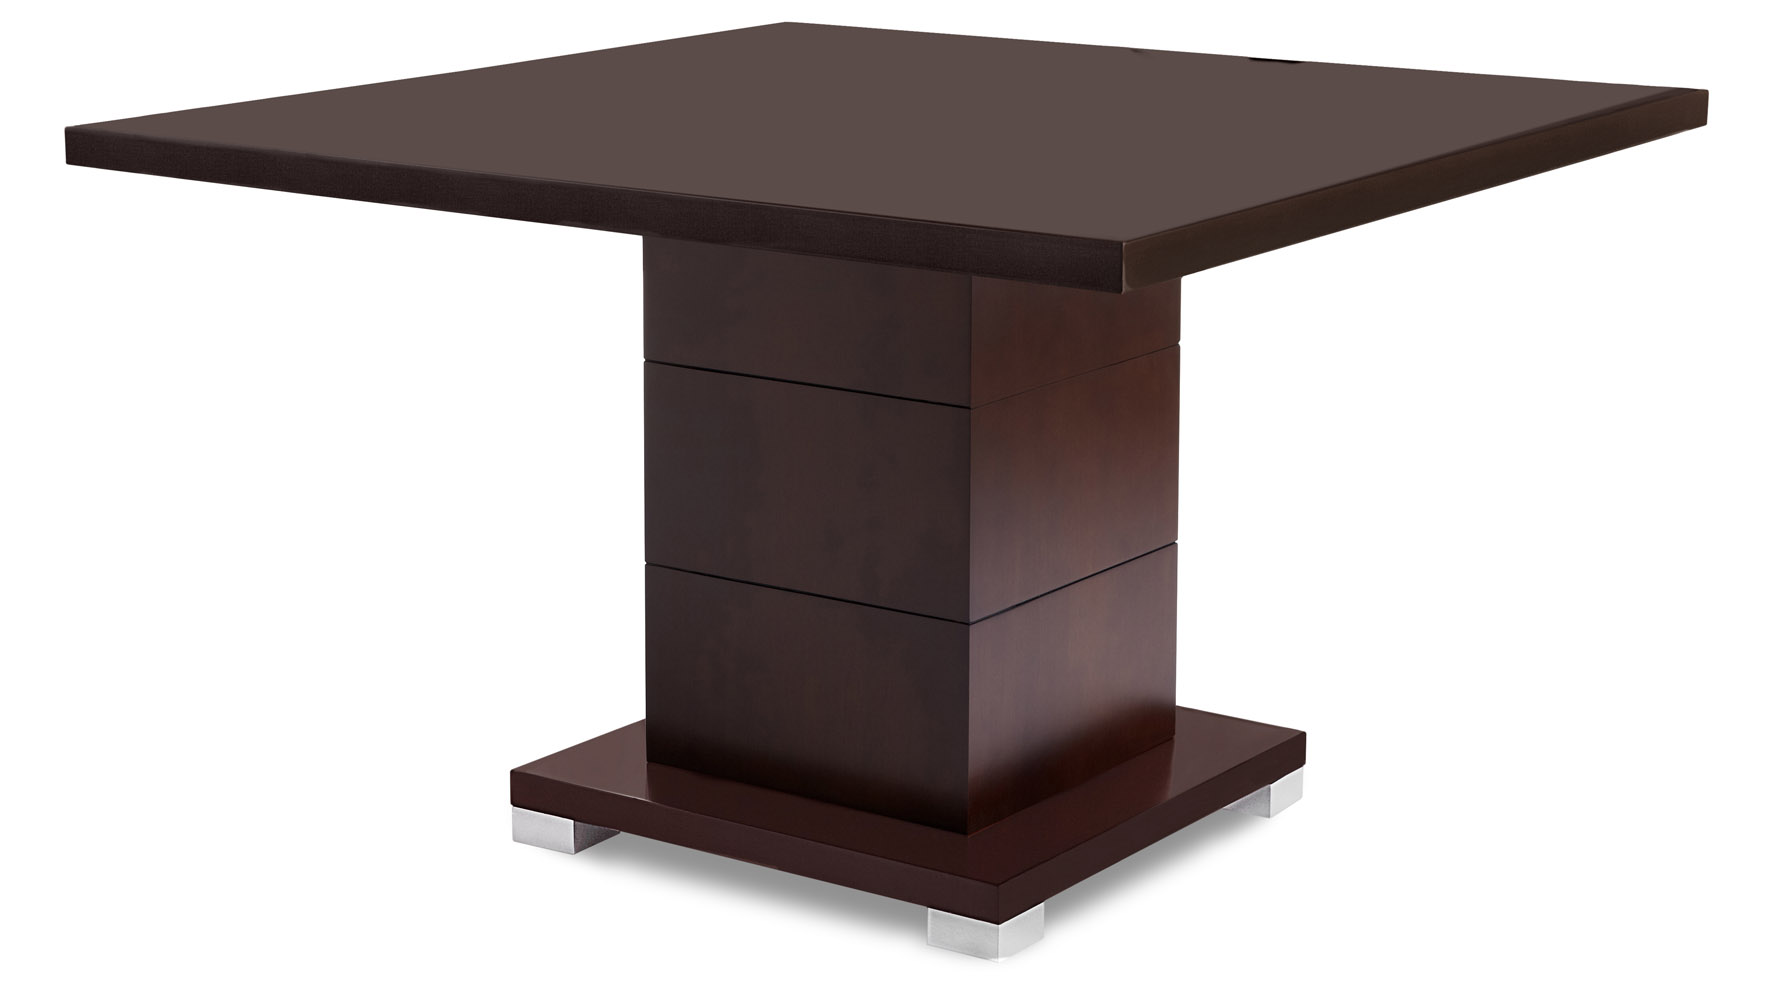 Home / OFFICE / Conference Tables / Ford Conference Table - Dark